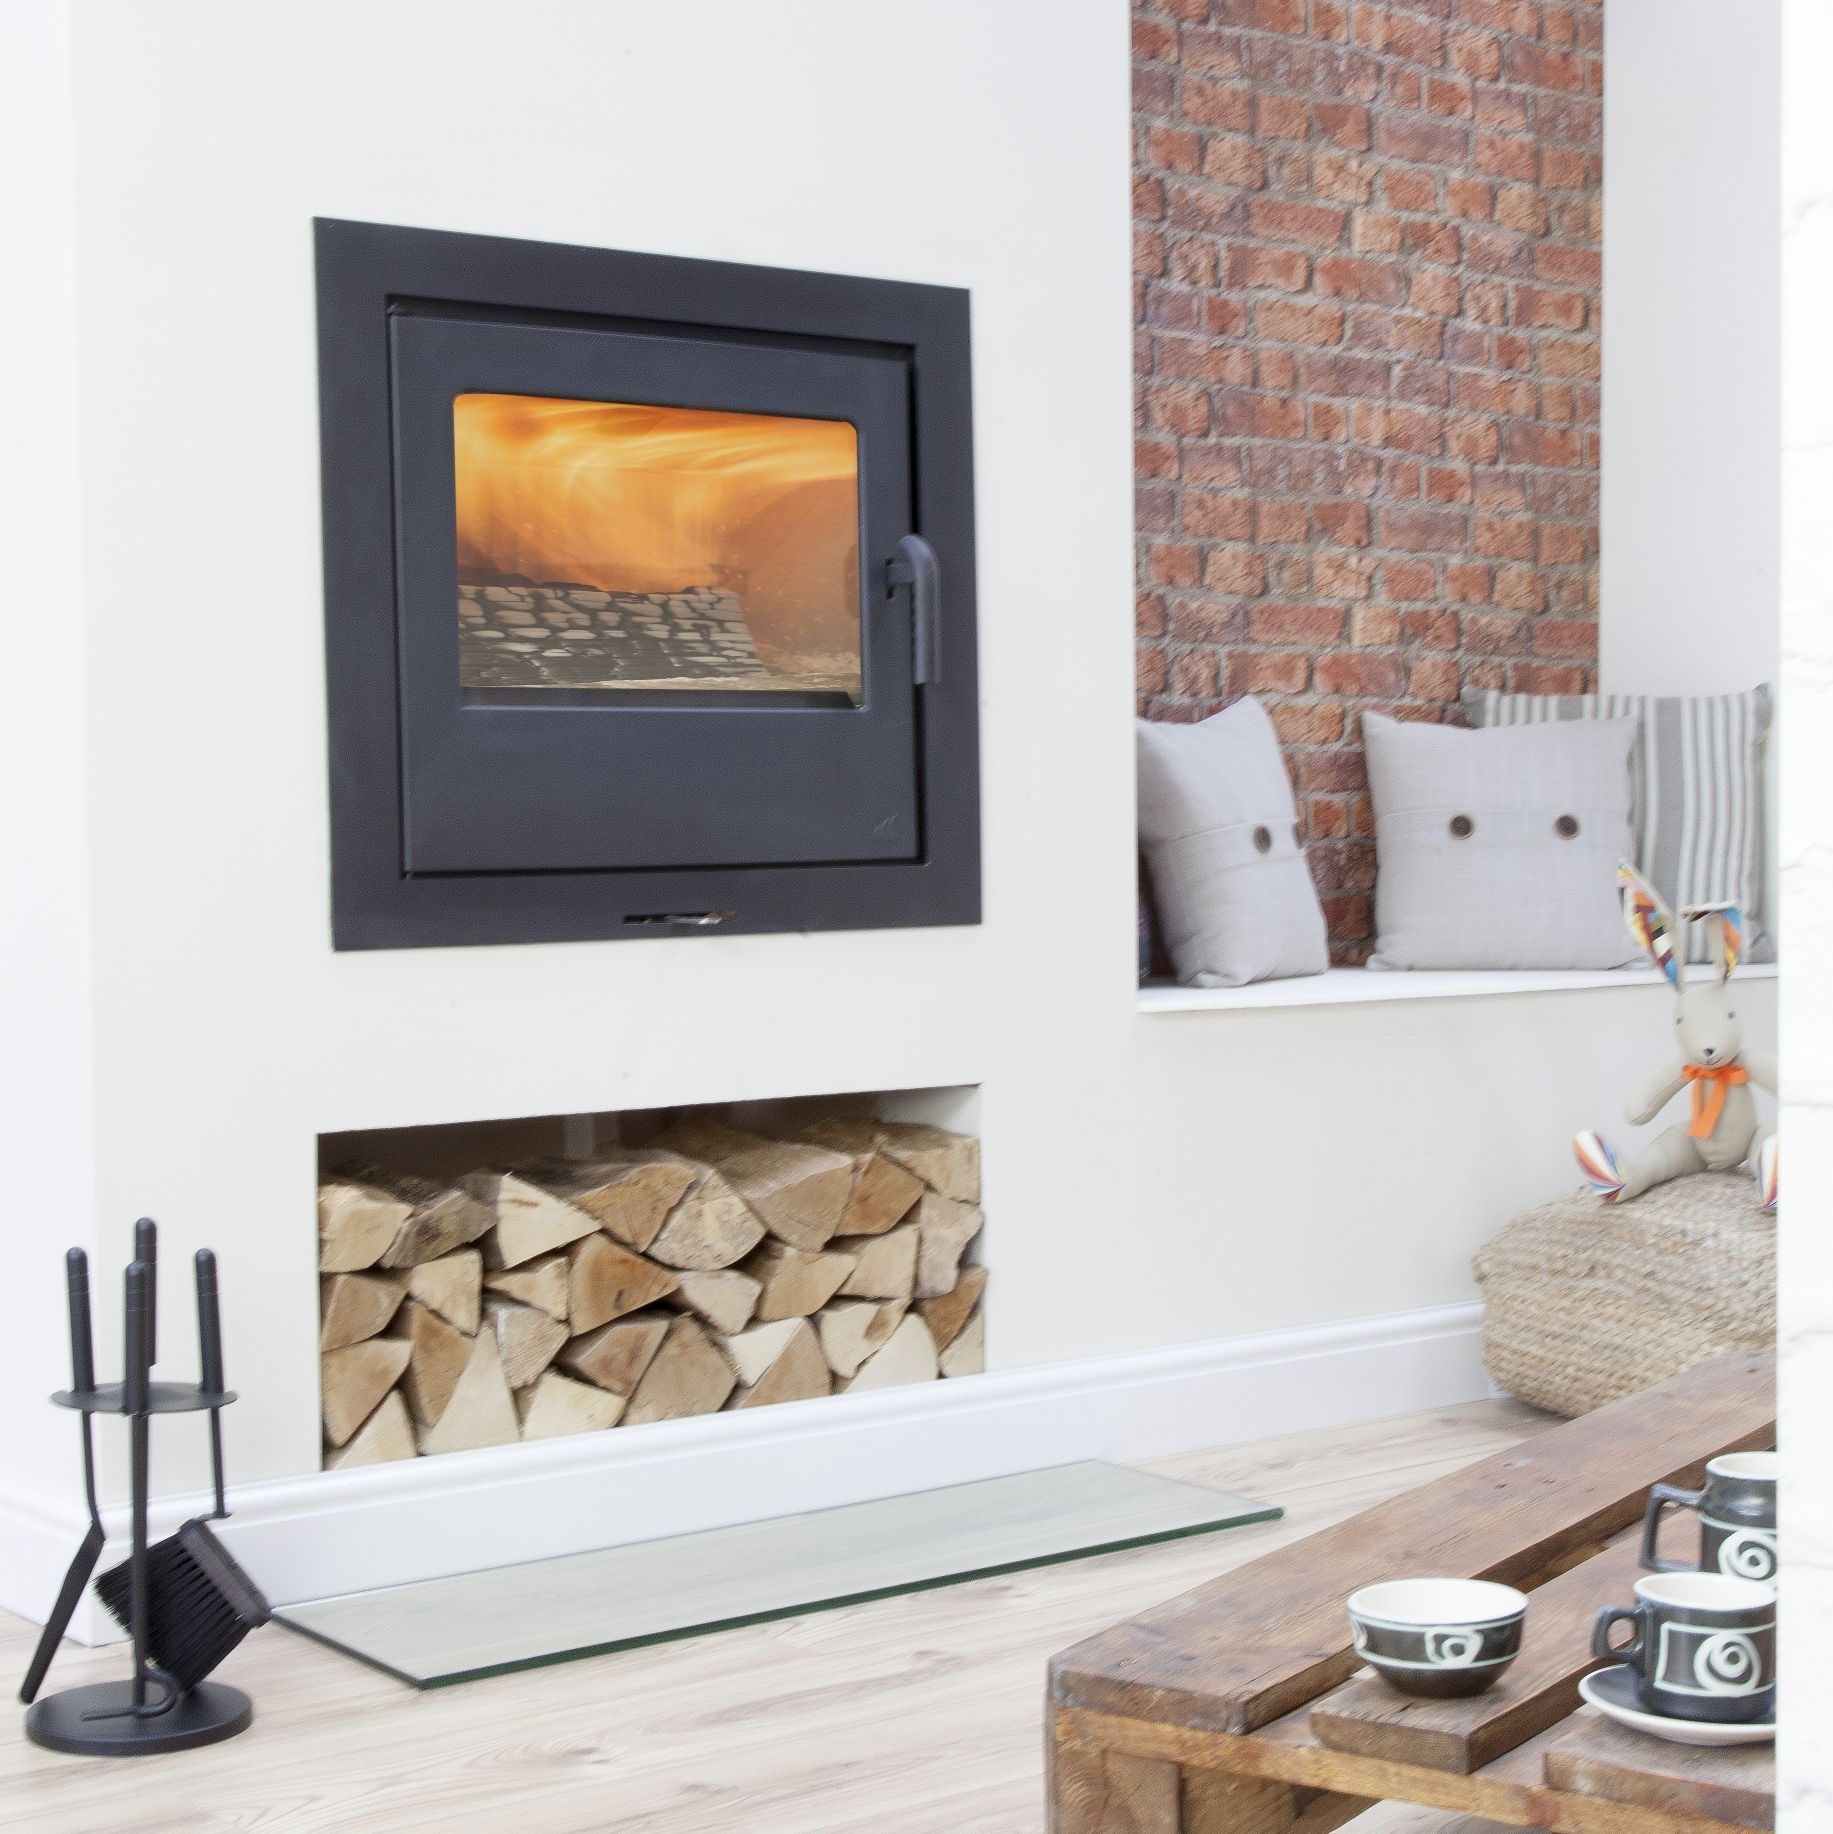 Image result for mendip inset stoves fireplaces pinterest